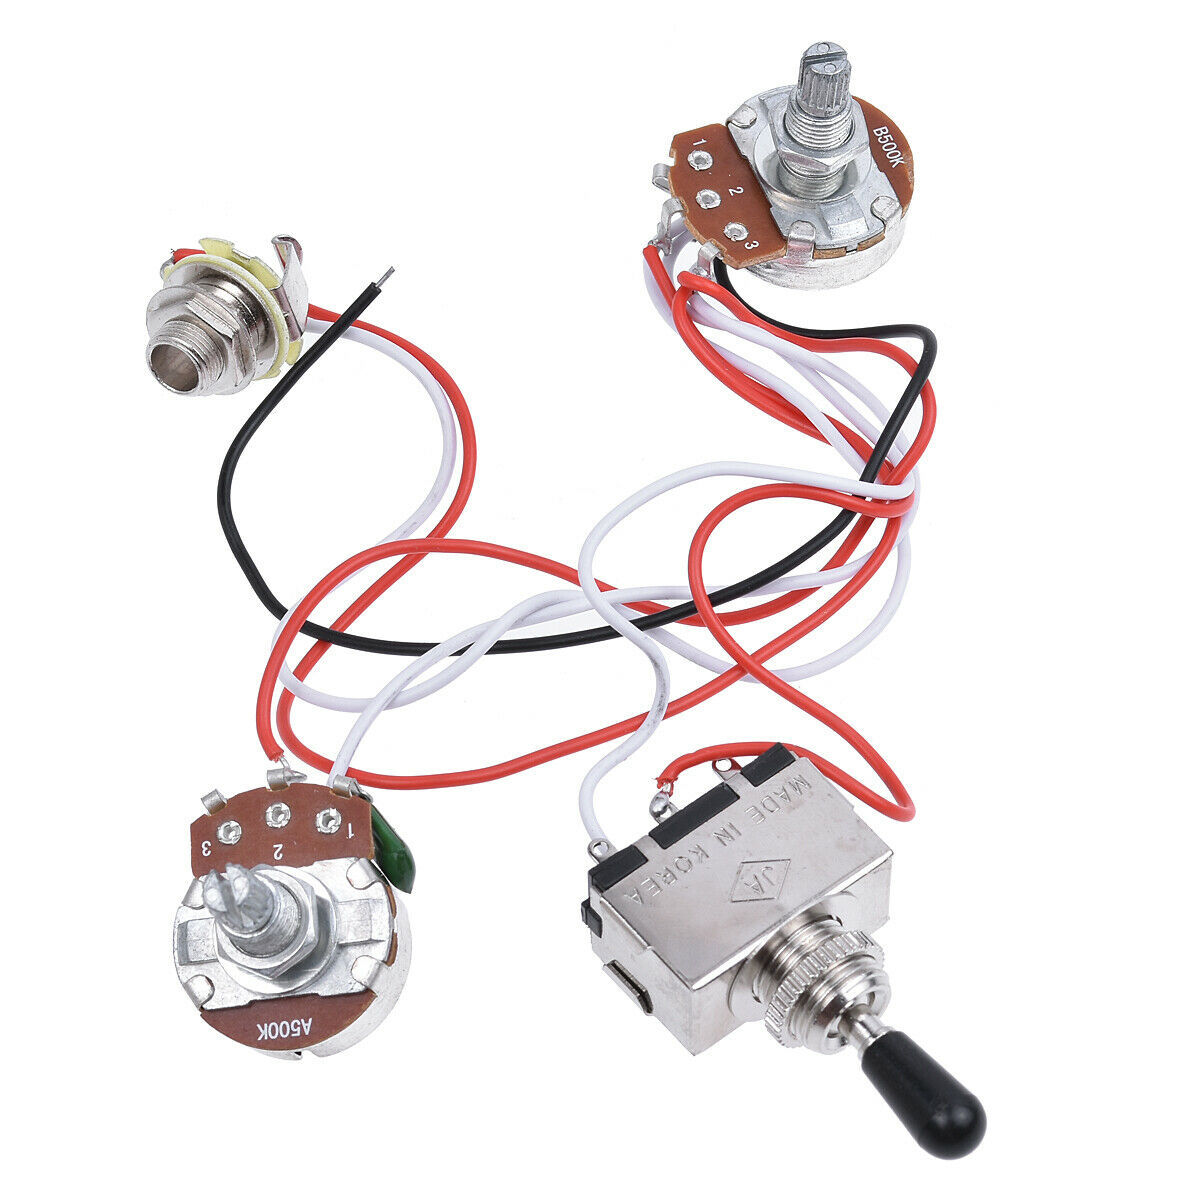 hight resolution of details about electric guitar wiring harness kit 3 way toggle switch 1v1t for guitar parts